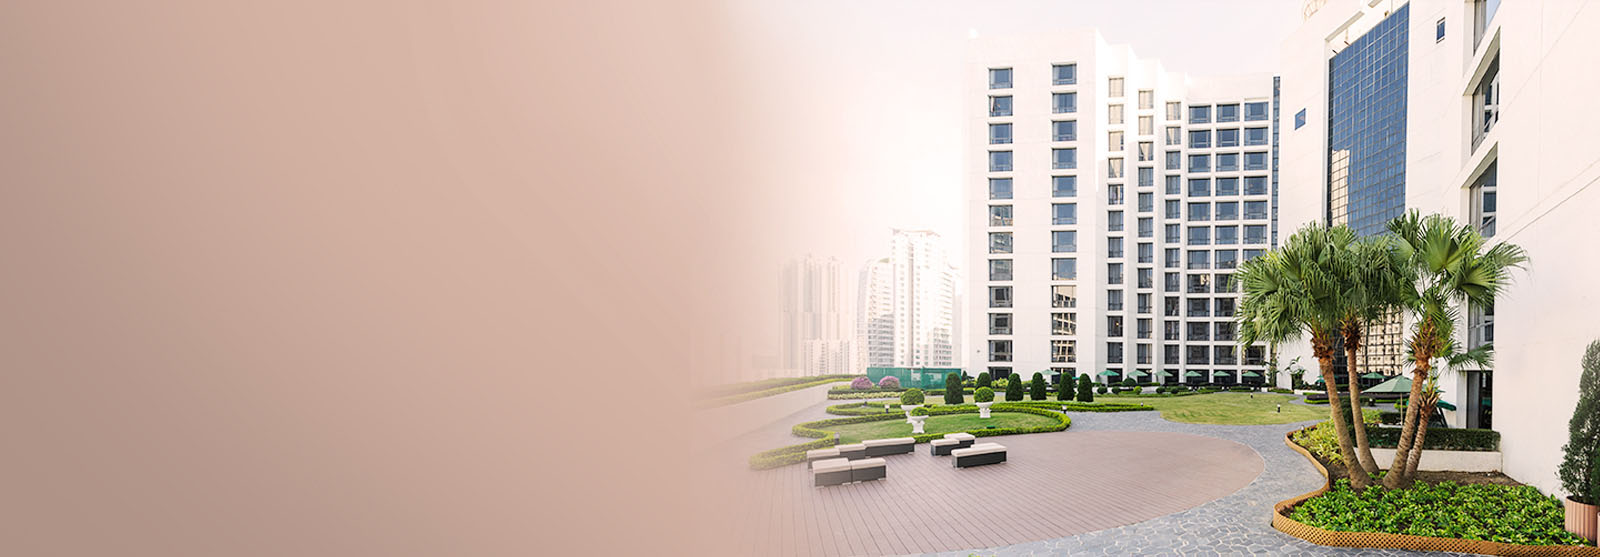 Hang Lung Properties Limited Kornhill Apartments